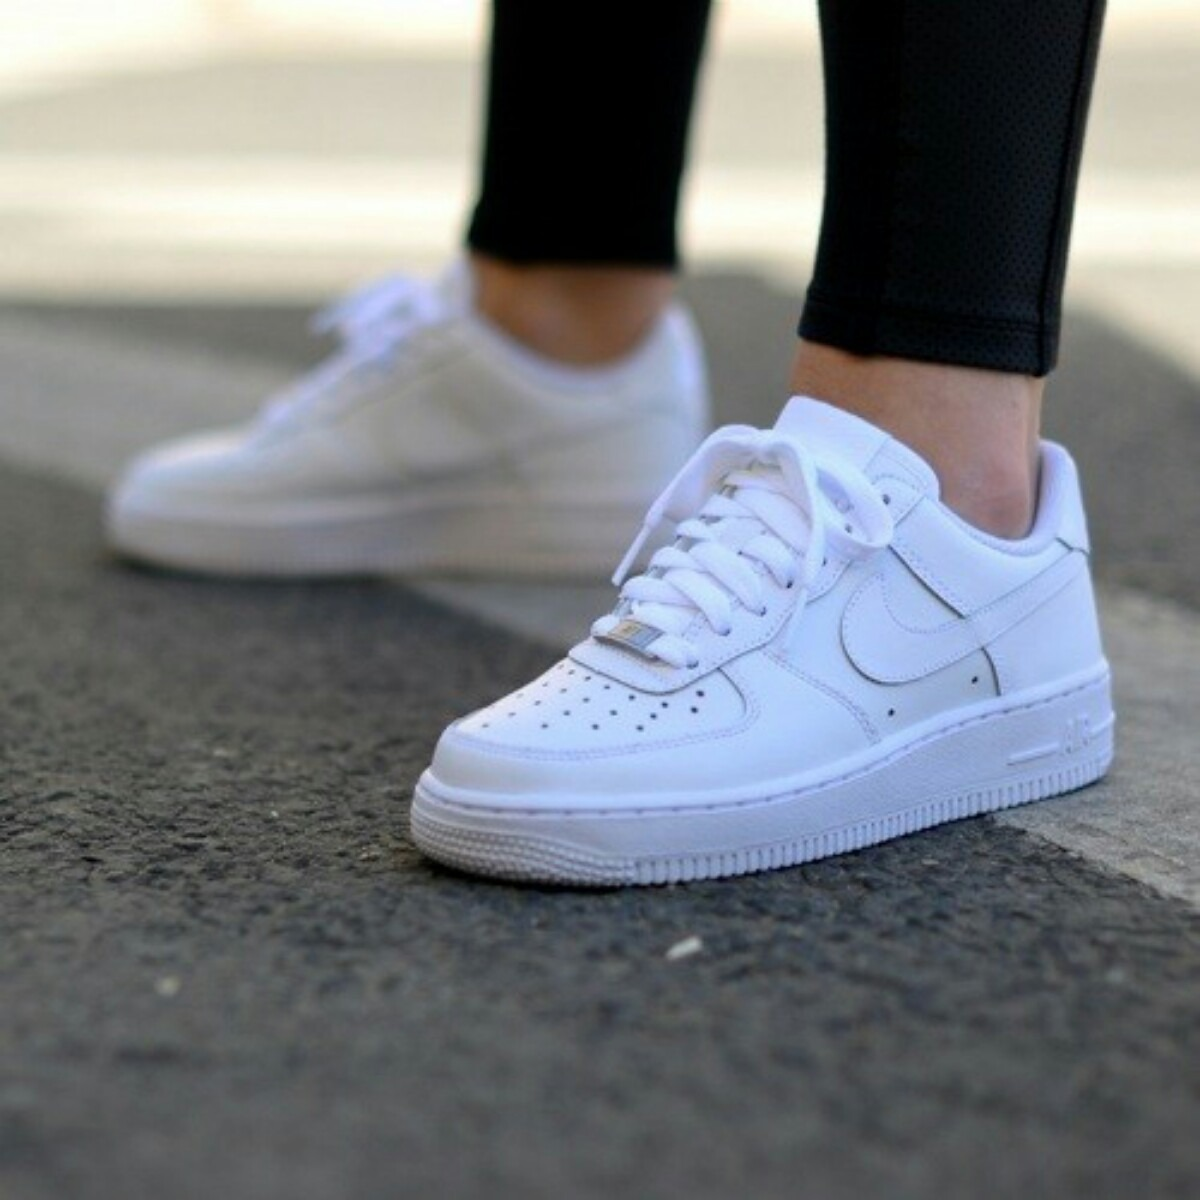 Nike Air Force 1 Low GS nike air force q |Fino a dieci% fuori ankarabarkod.com.tr